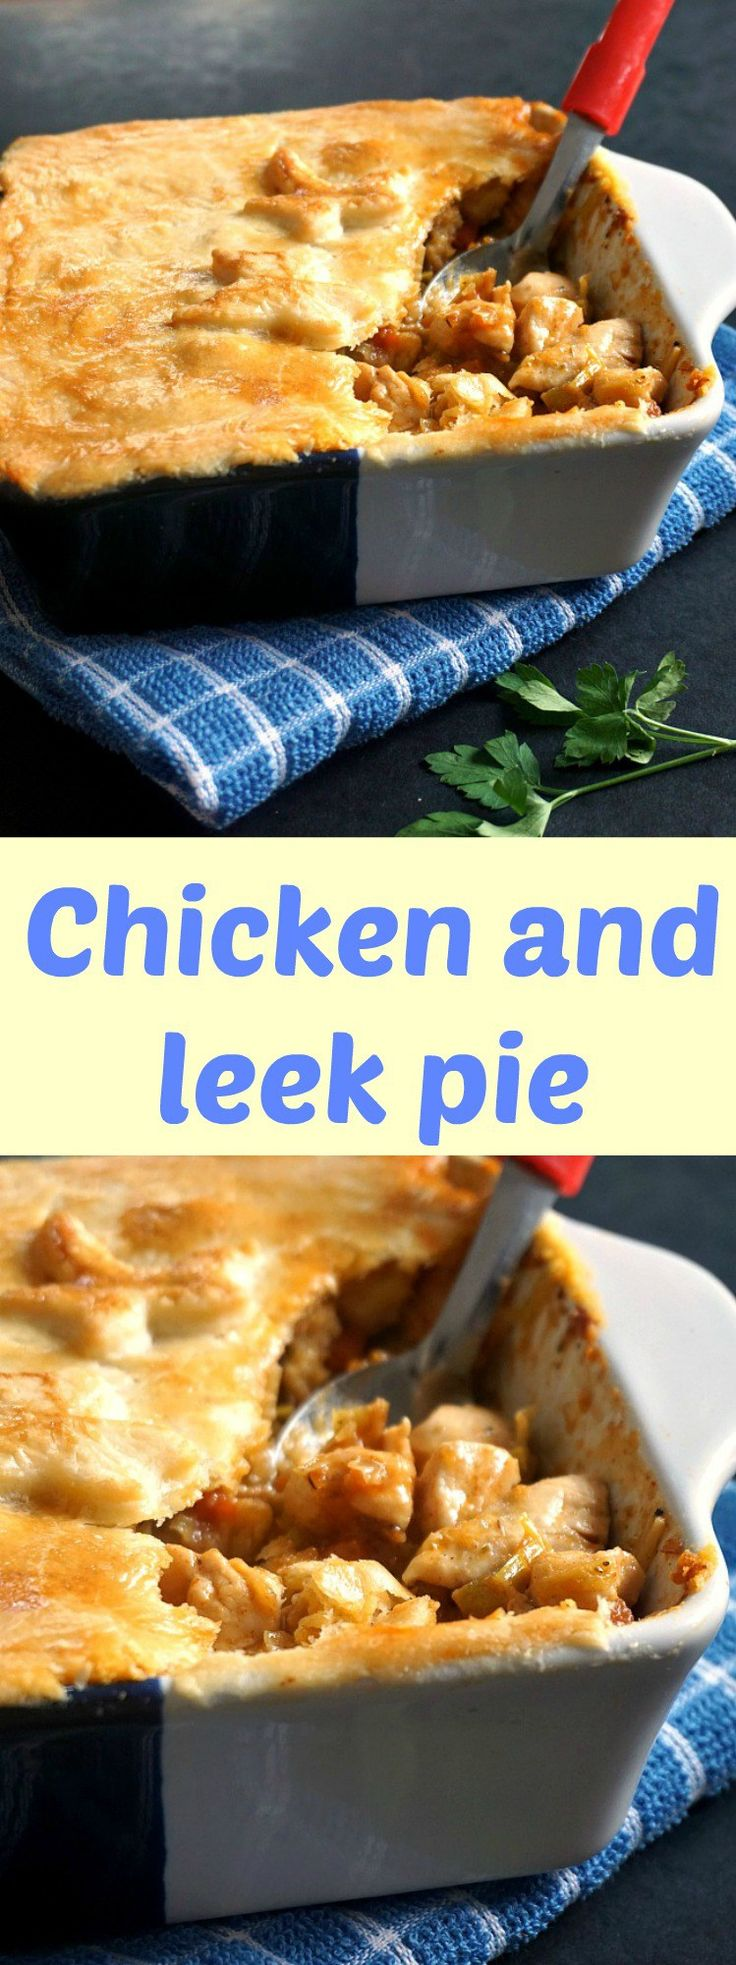 Chicken and leek pie, a fabulous British classic; so comforting and delicious